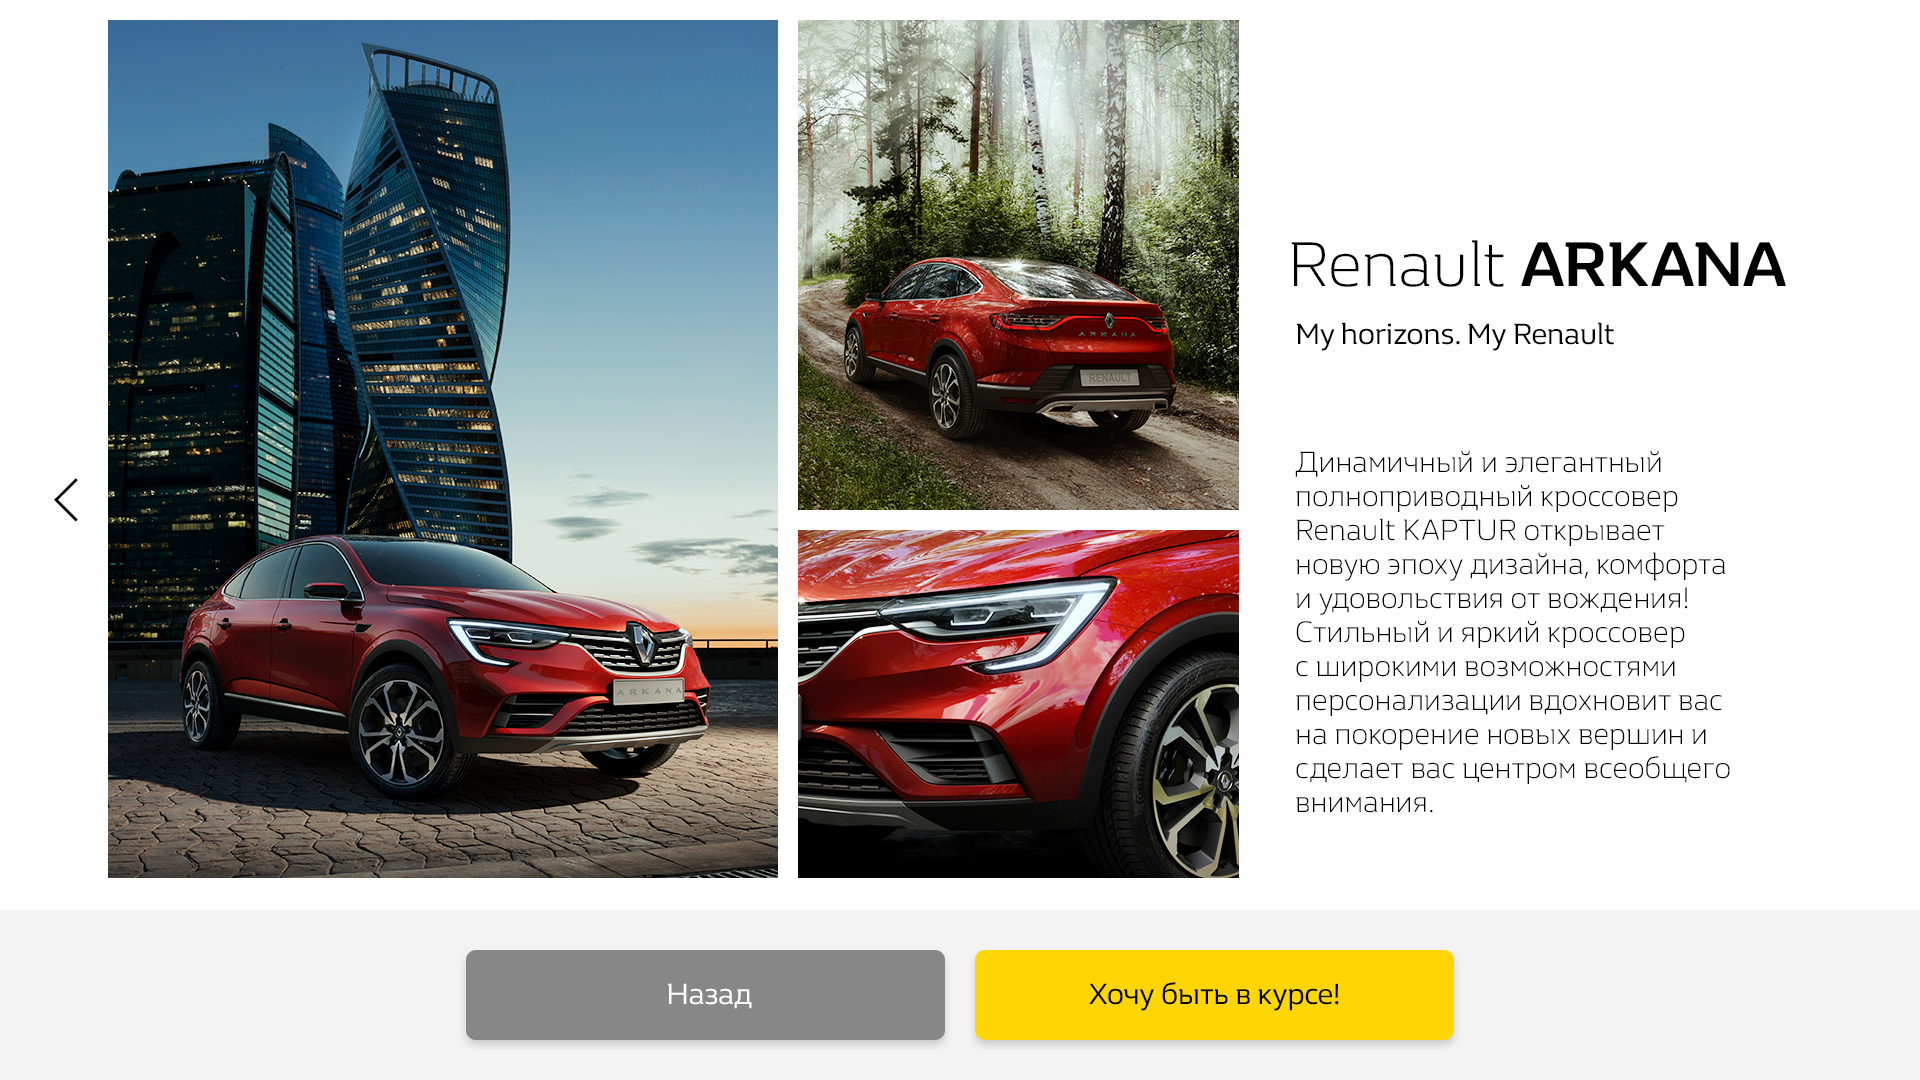 Renault Virtual Dealer